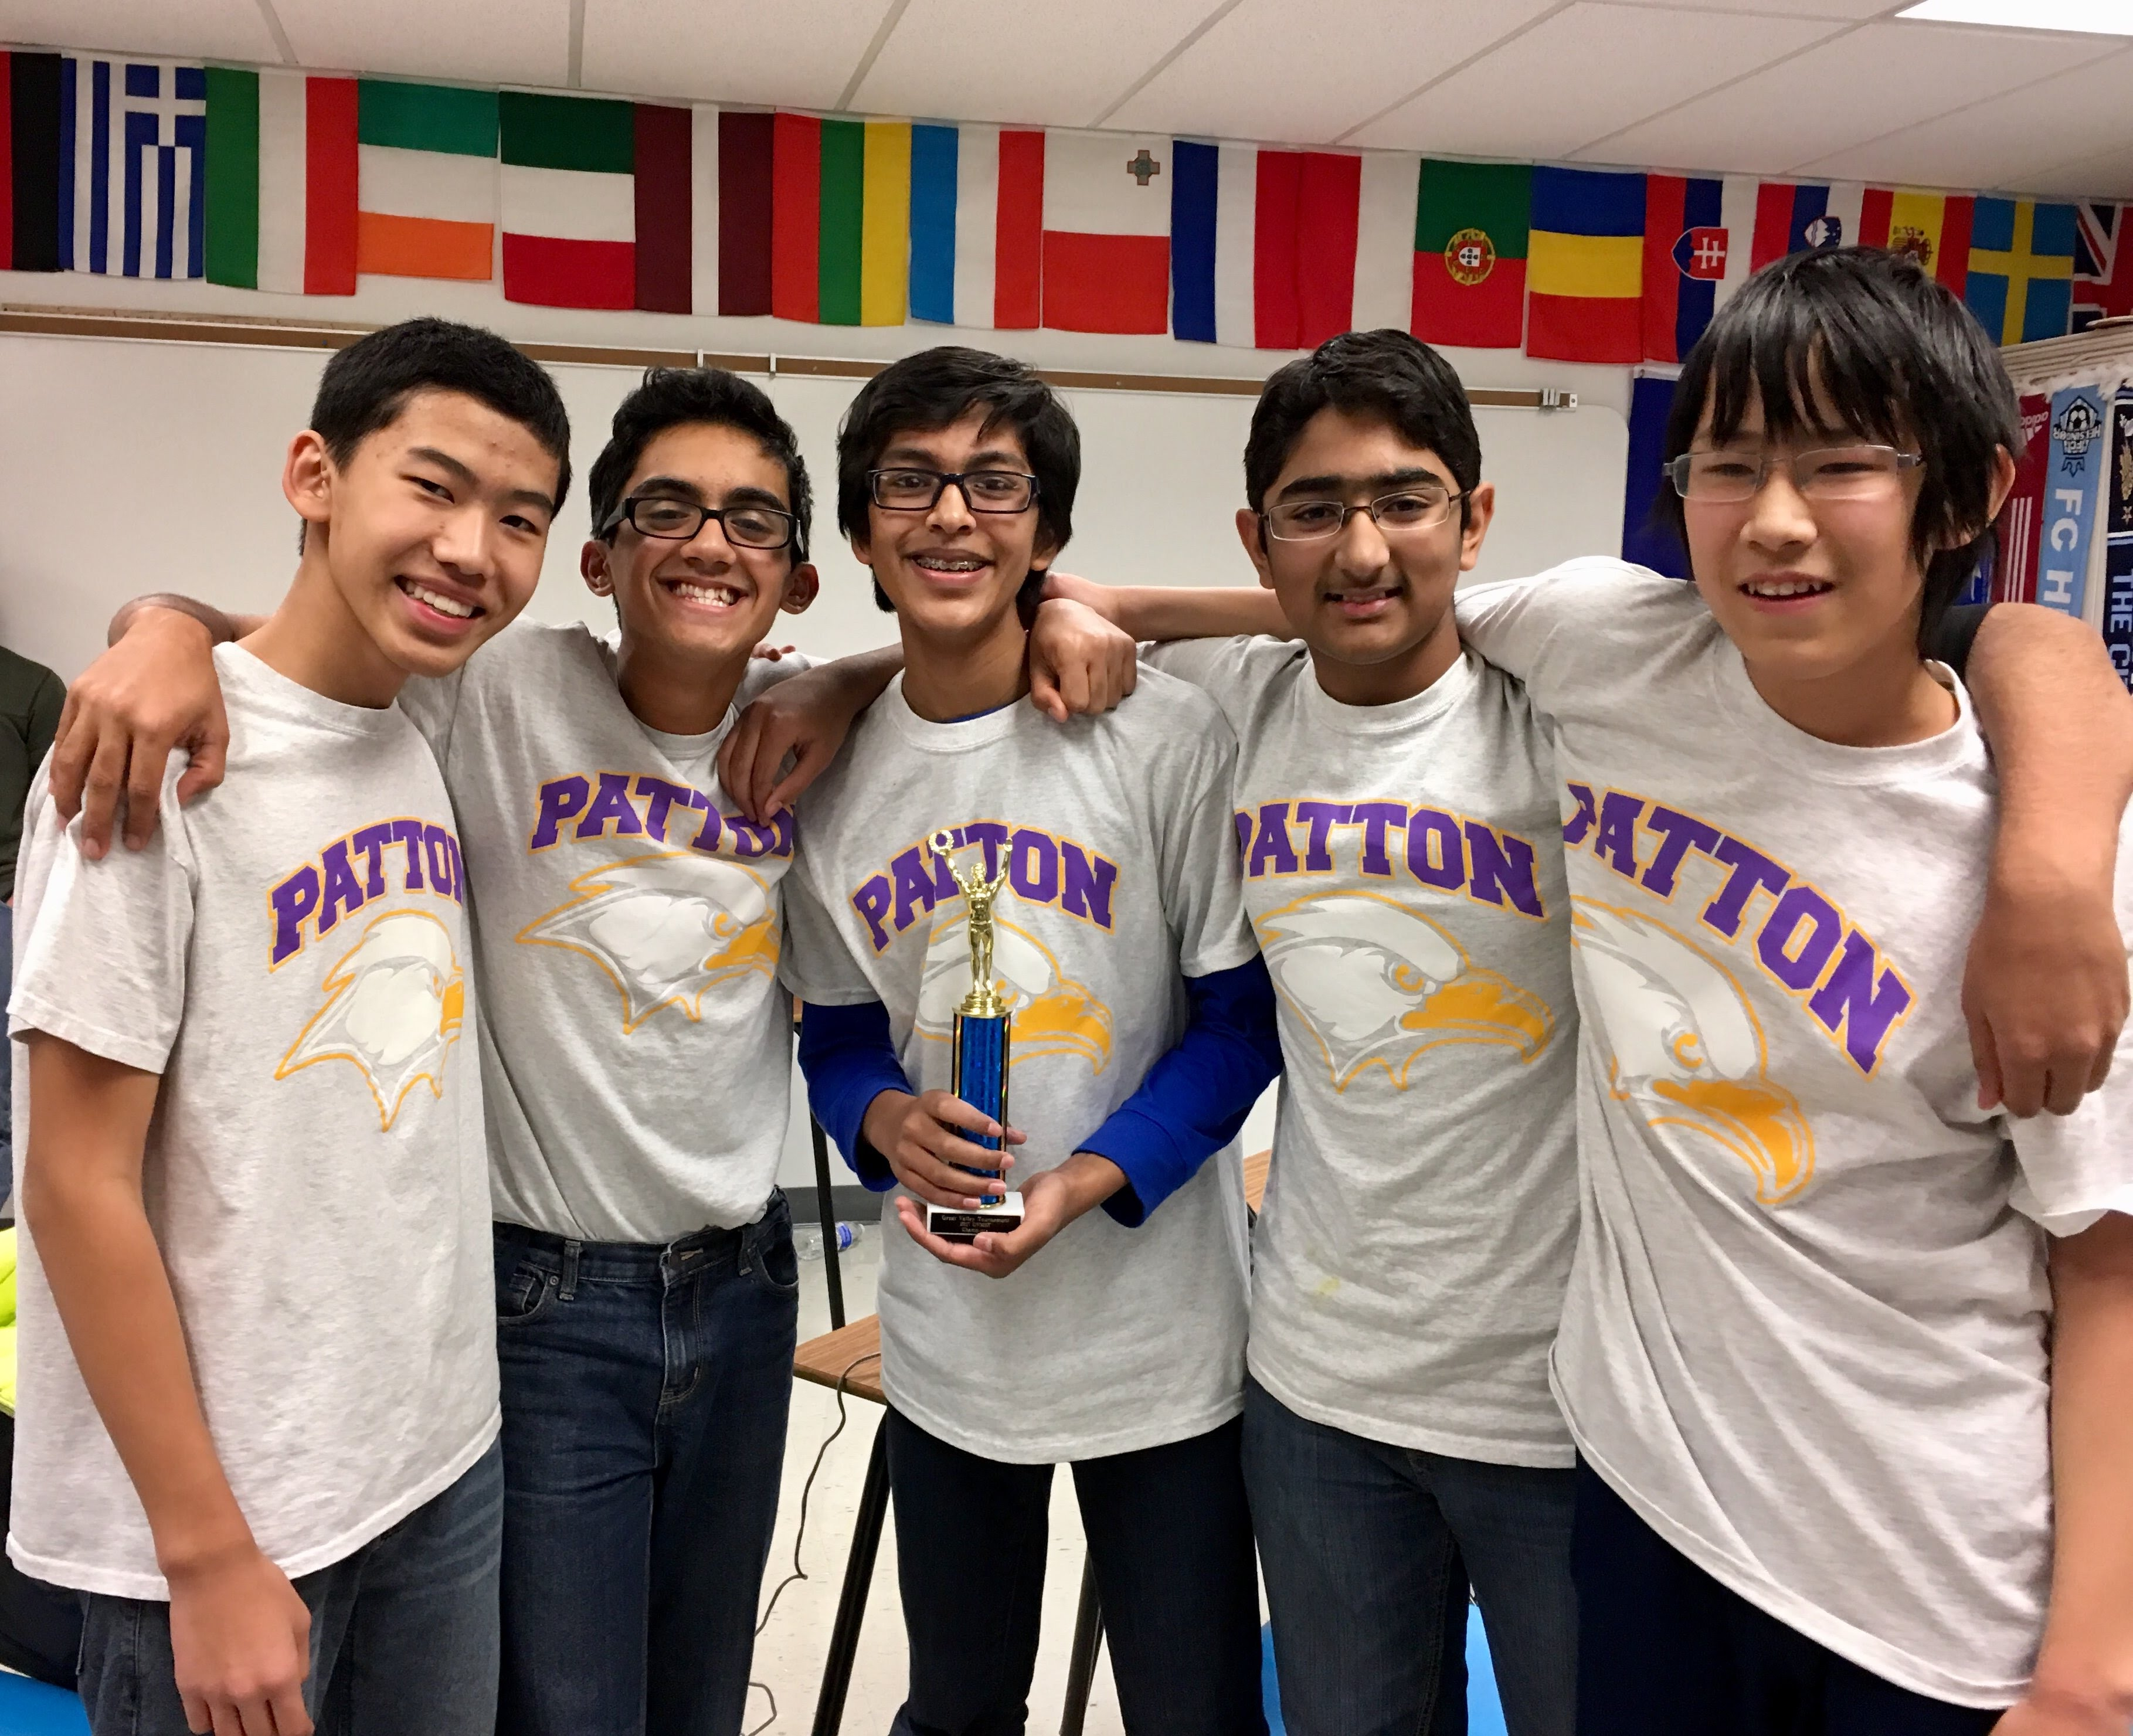 Patton at NAQT